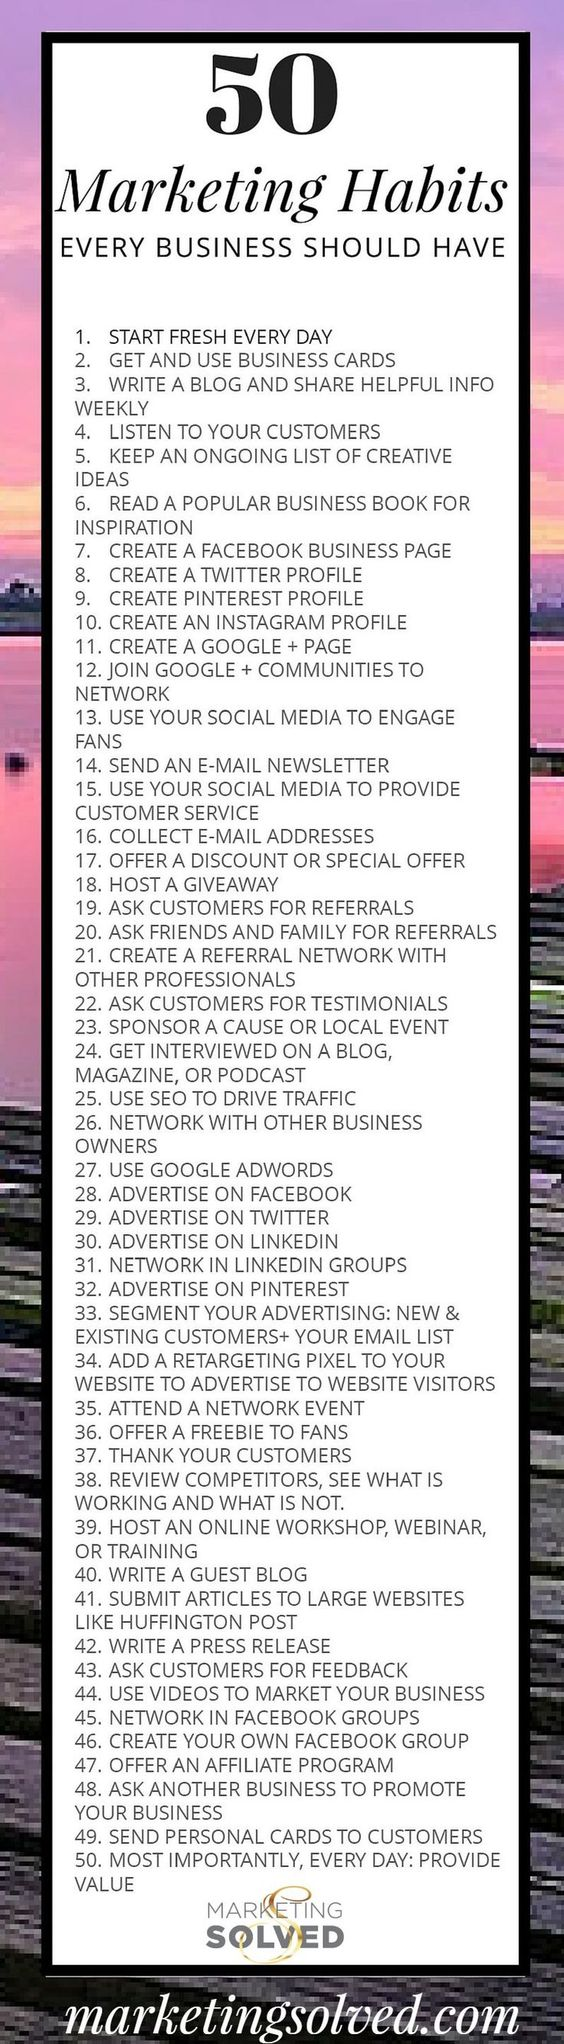 50 marketing habits every business should have. #infographic #checklist